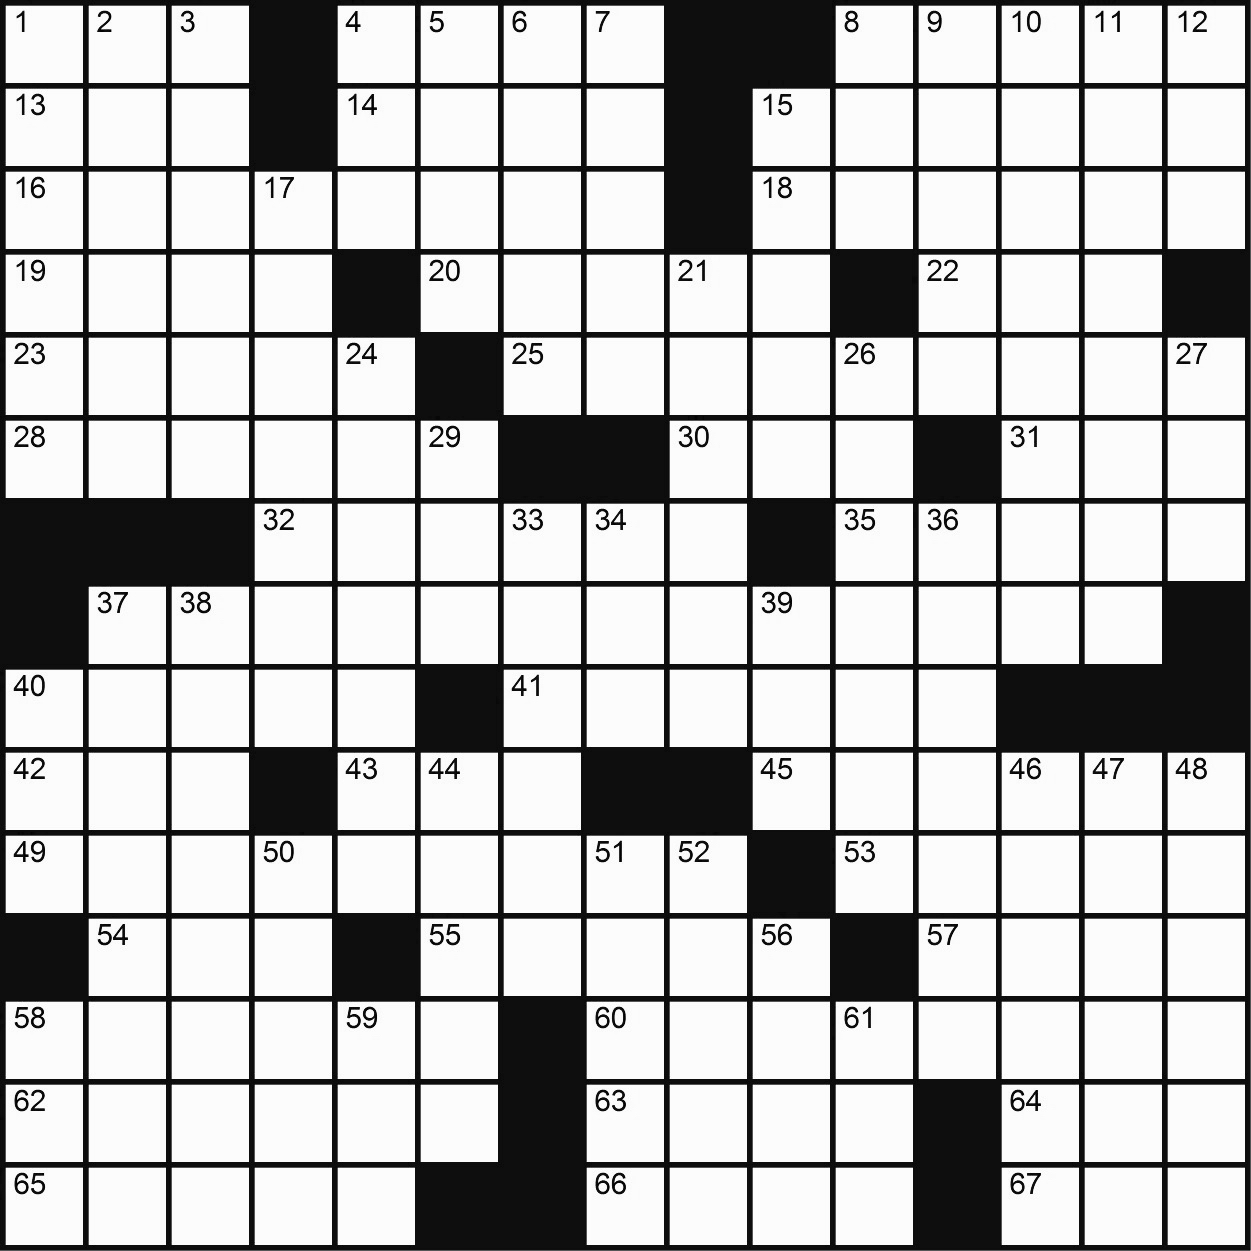 Puzzlemaster David Steinberg Developed This Games Themed Crossword Just For PlayTime Download Printable PDF Version To Complete At Your Leisure And